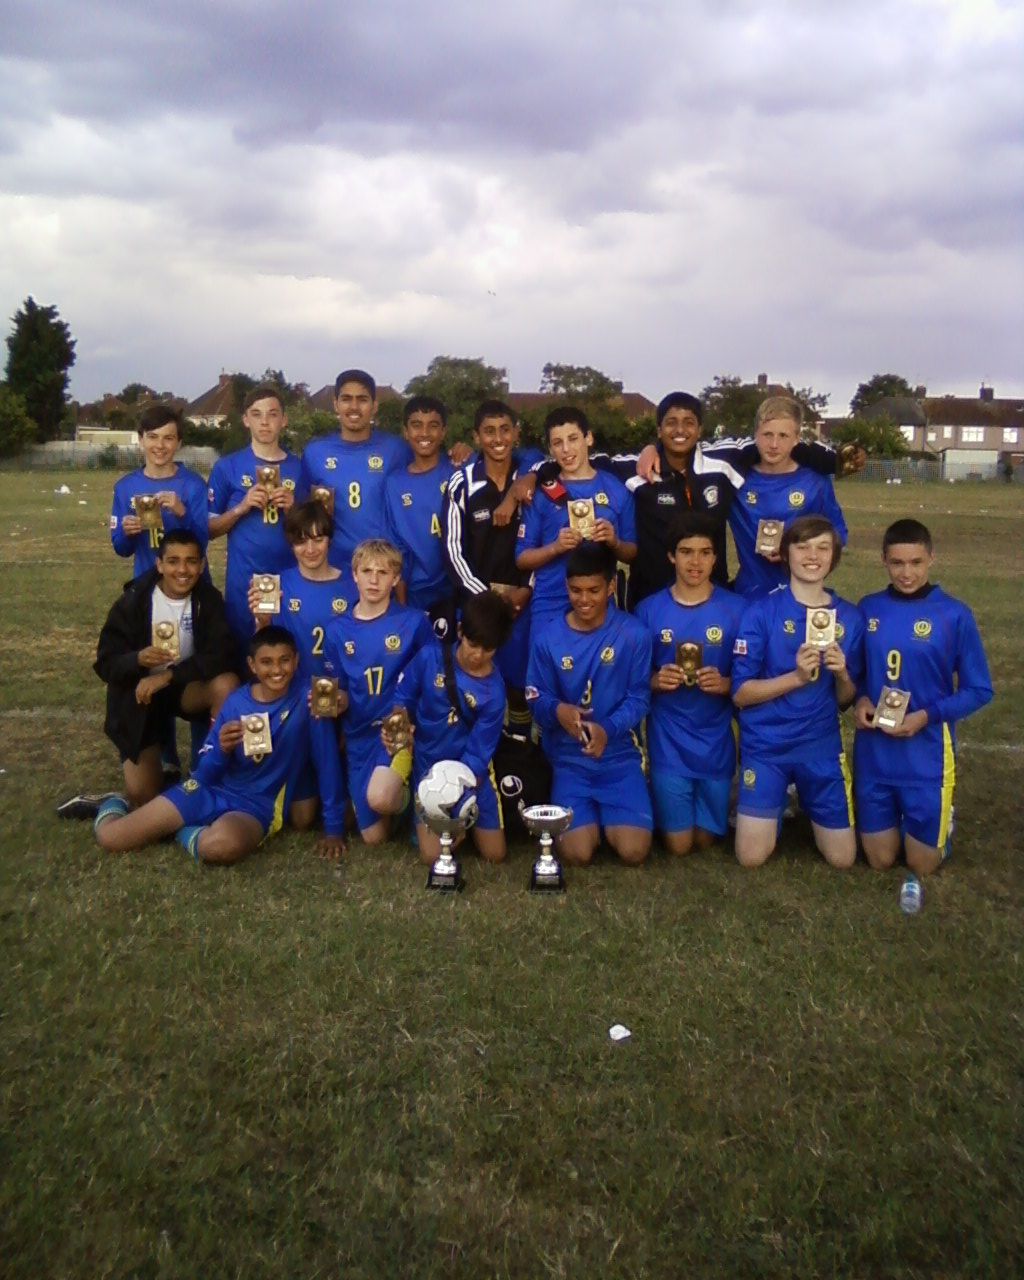 Under 14's Double Winners at Barking Tournament 2011